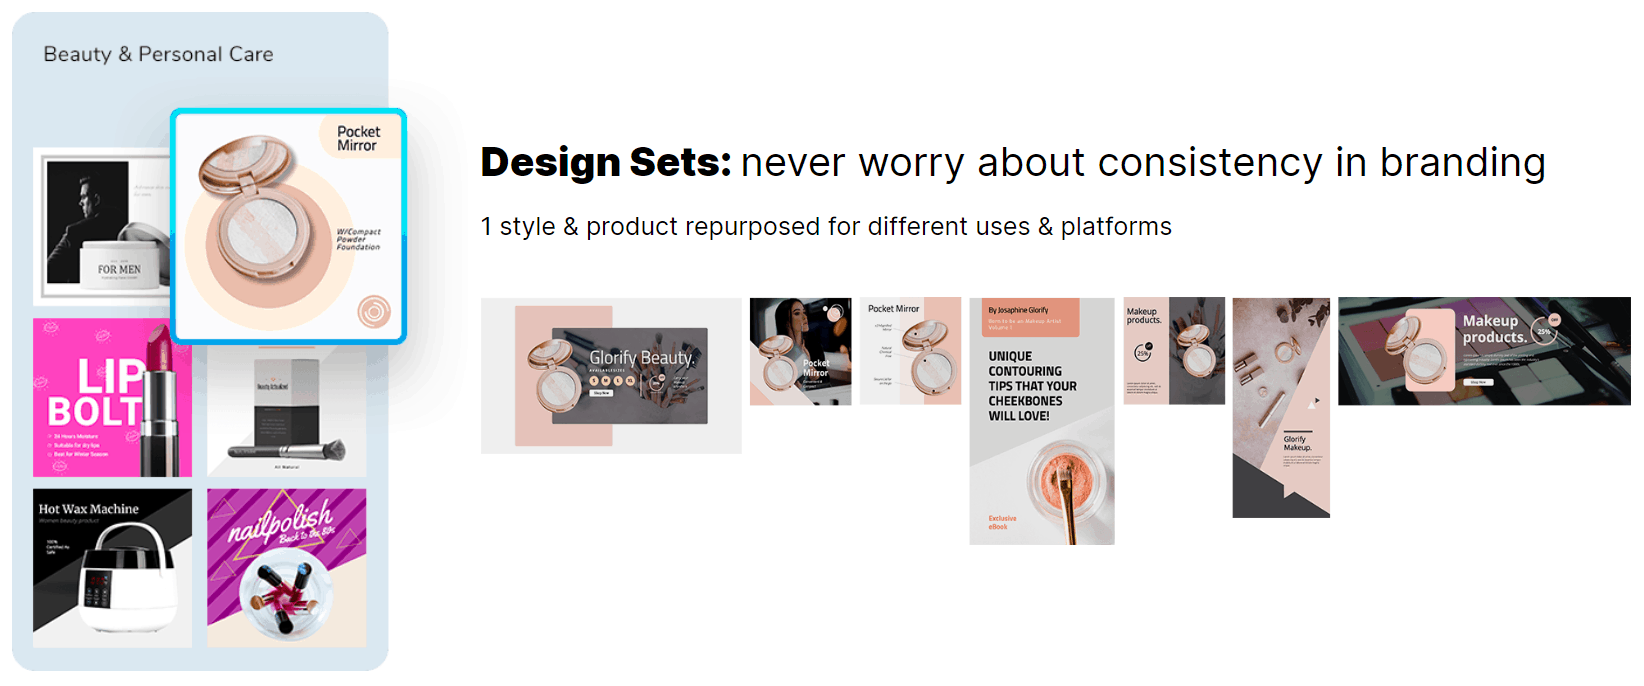 Beauty And Personal Care Designs In Glorify App